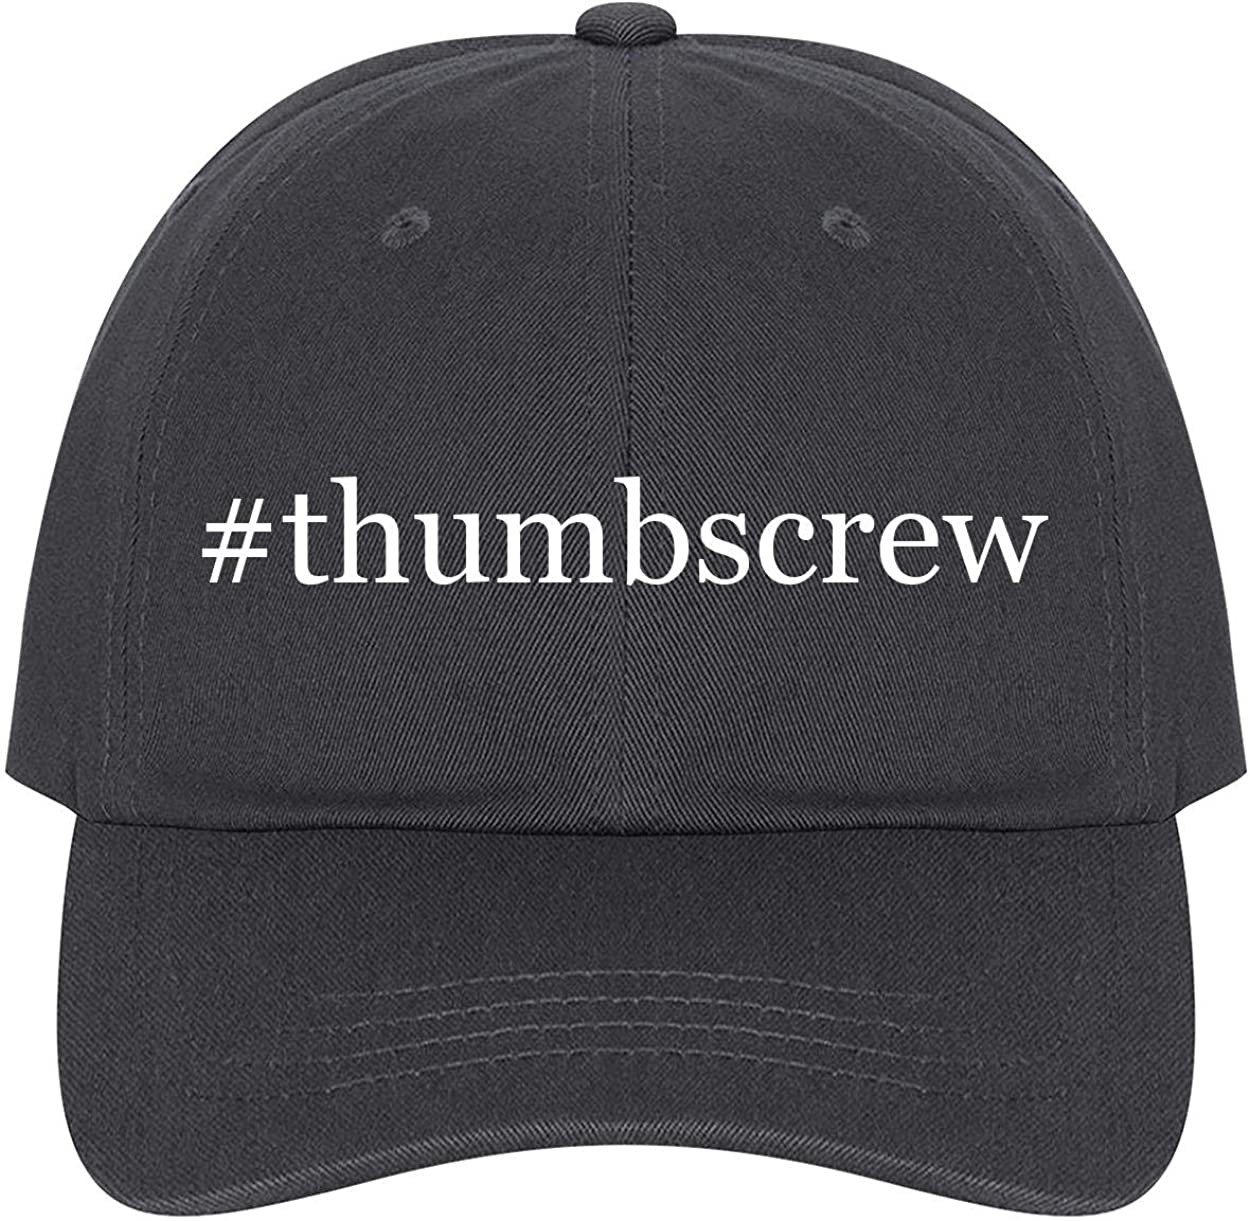 The Town Butler #Thumbscrew - A Nice Comfortable Adjustable Hashtag Dad Hat Cap